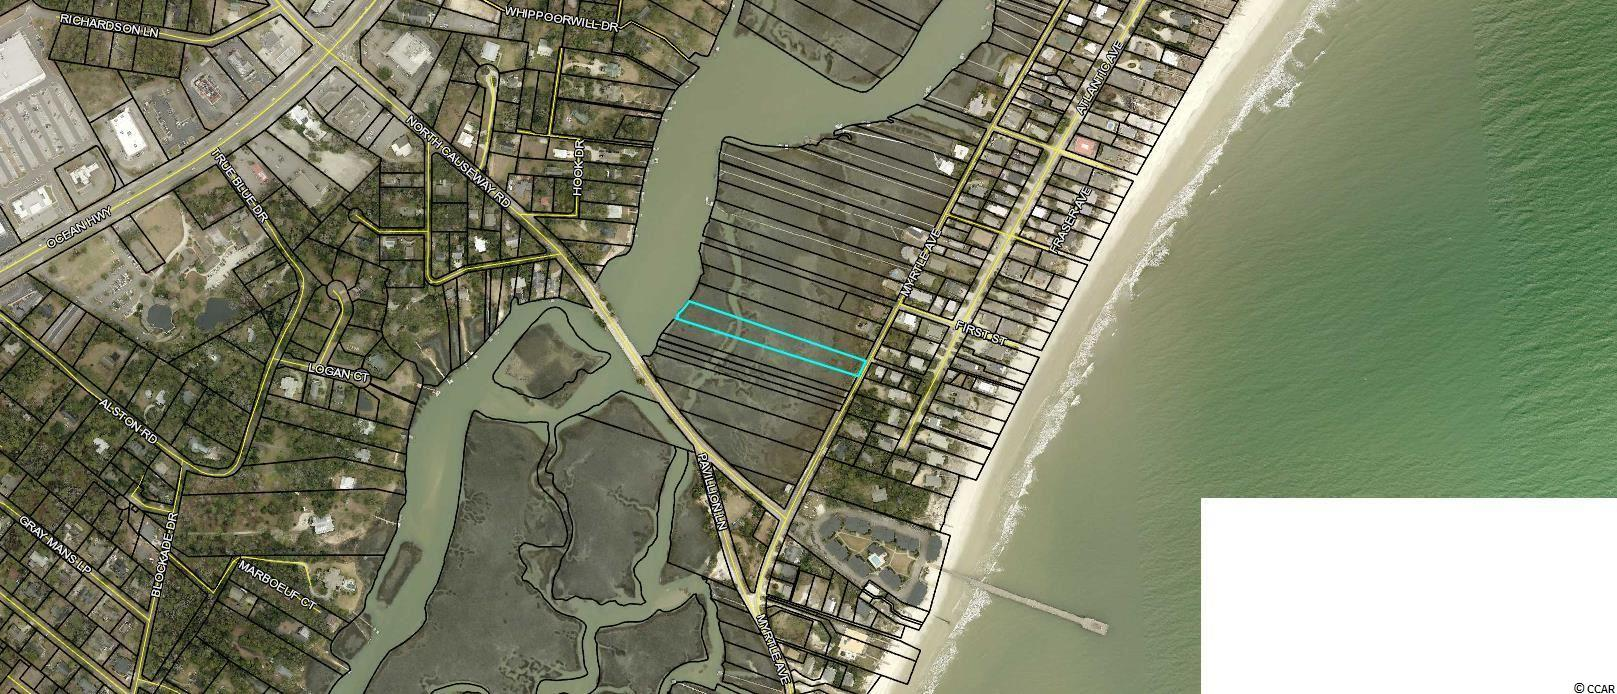 Marsh lot on Pawleys Island that meets DHEC requirements for dock permit. Length to main creek is approx 796 feet well within the 999 maximum allowed for dock. Not buildable for residential.